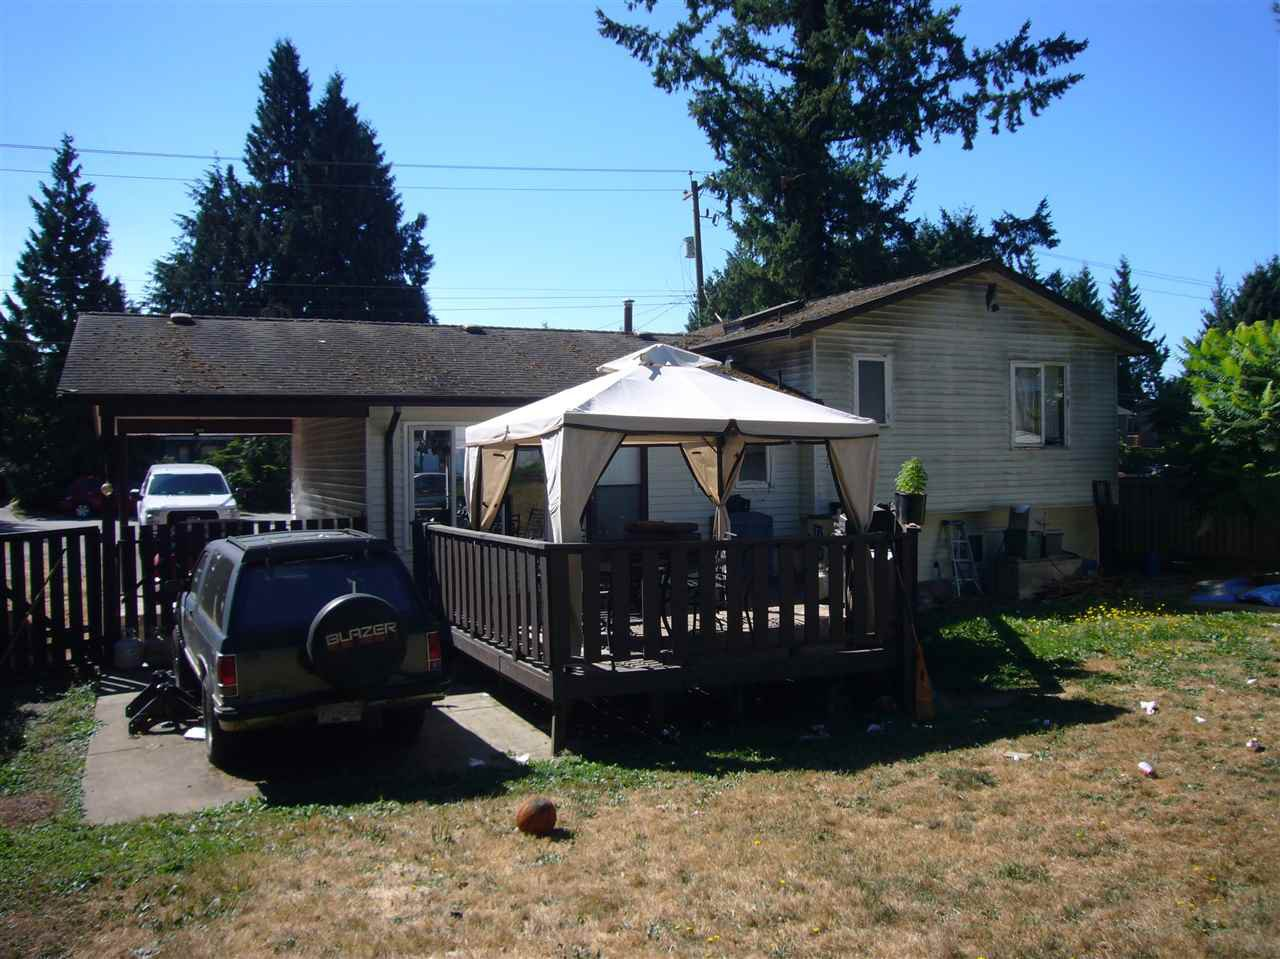 Photo 7: Photos: 32307 14TH Avenue in Mission: Mission BC House for sale : MLS®# R2196901